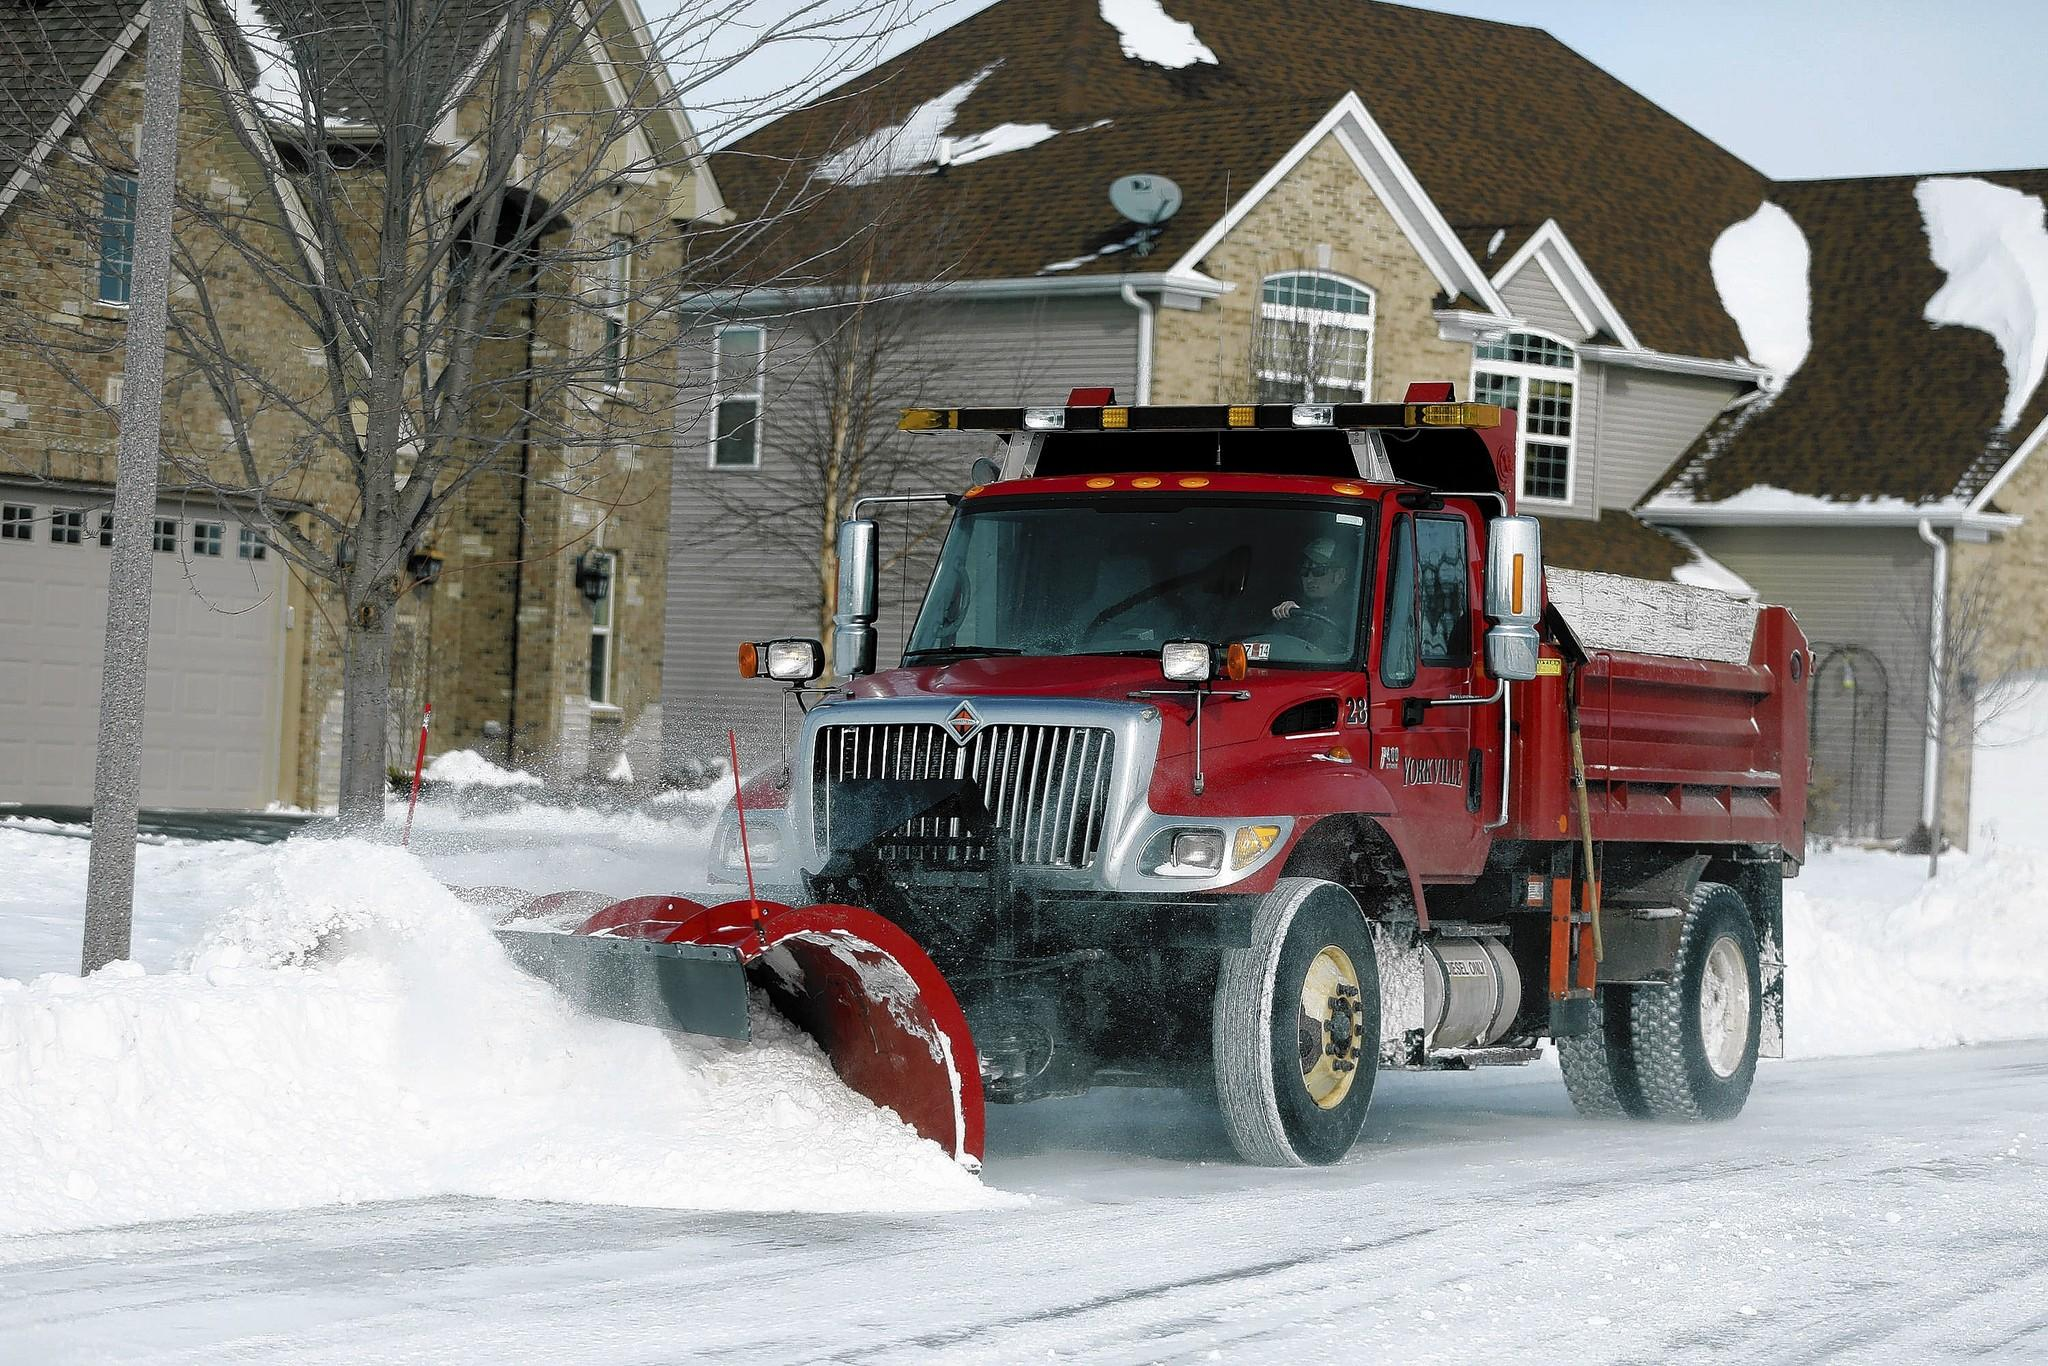 A snowplow works on a Yorkville subdivision Monday. Many communities are experiencing a salt shortage due to the rough winter.